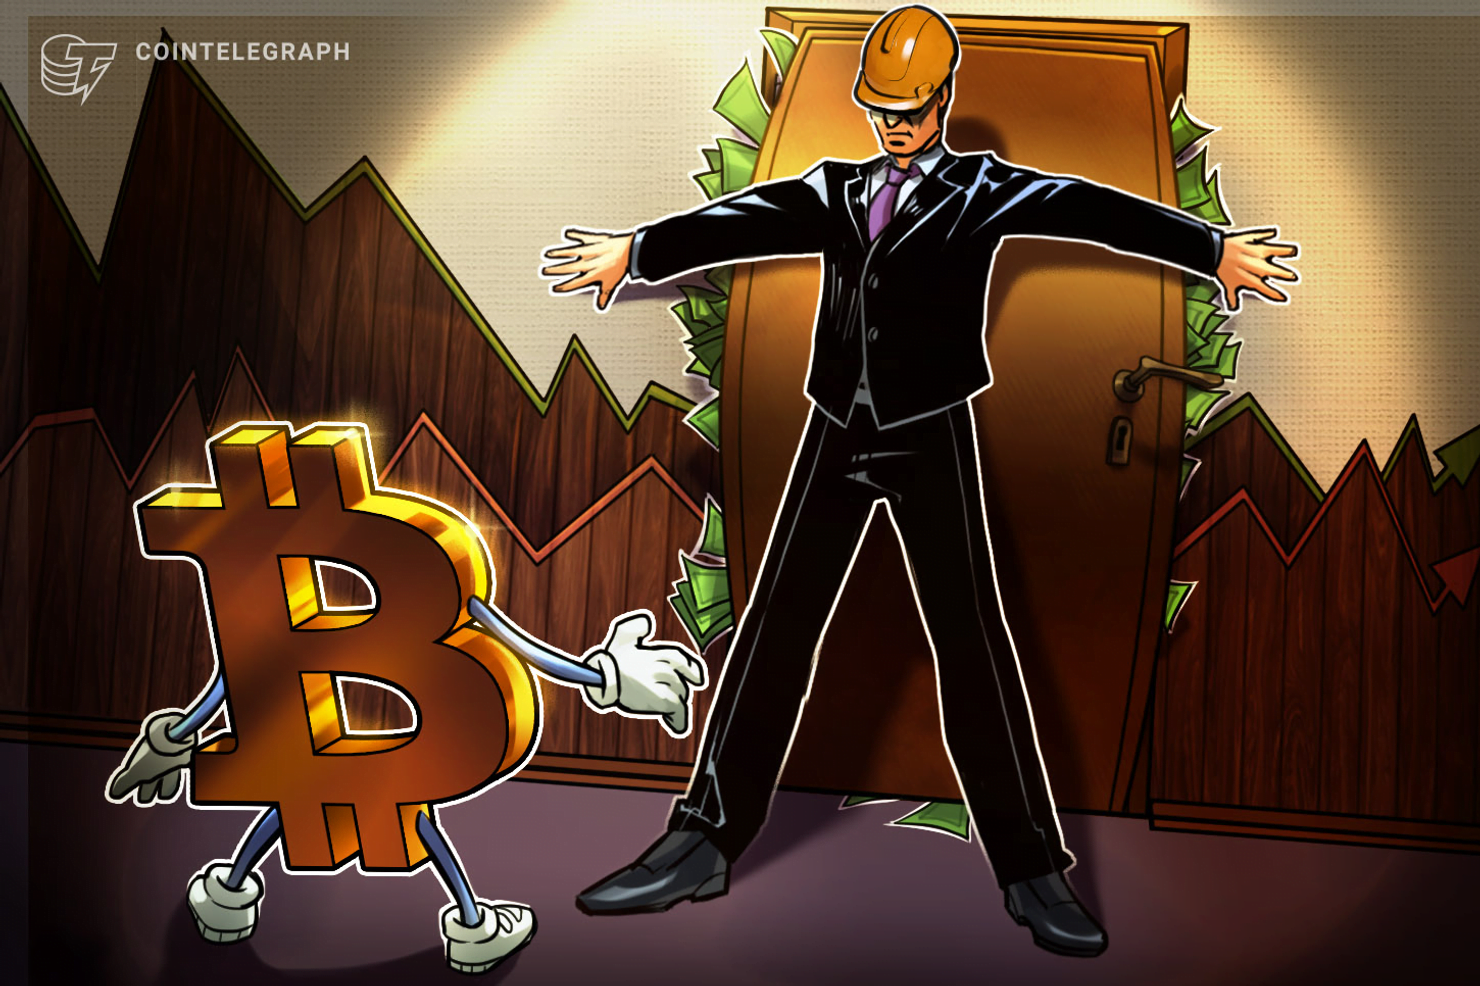 Is Bitcoin the best solution to the global pension crisis 2020 -2060?